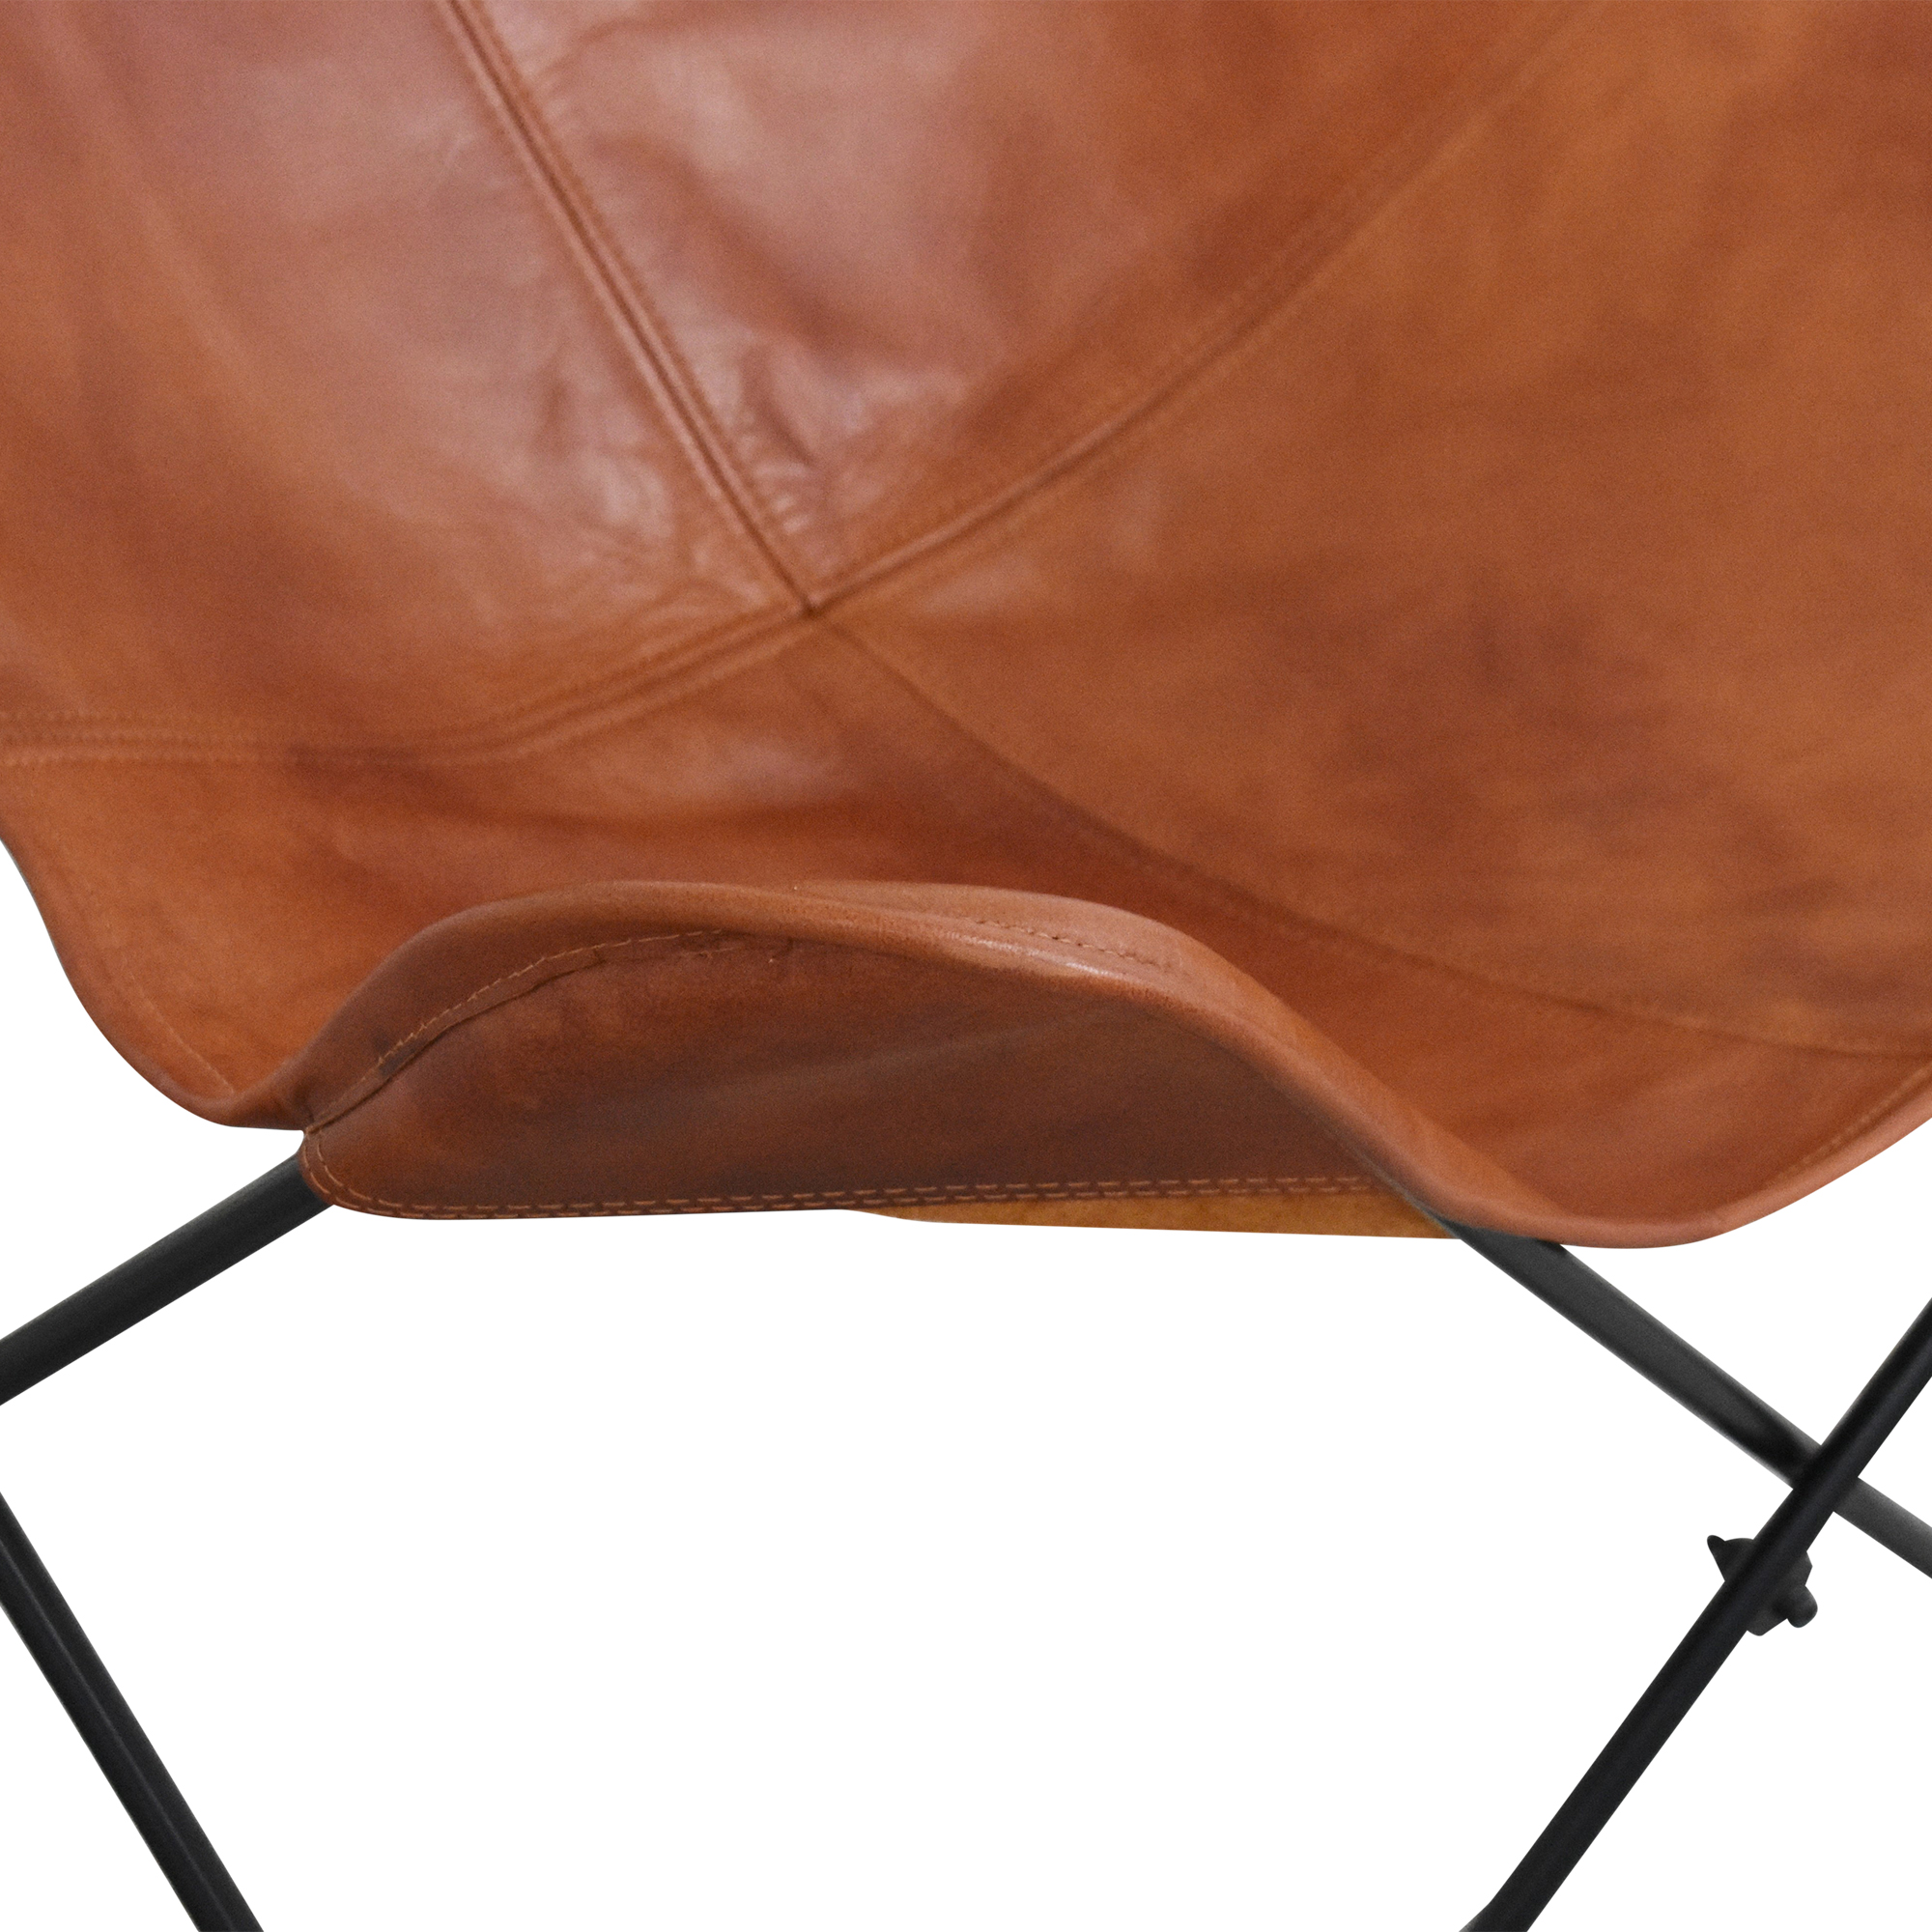 buy The Citizenry The Citizenry Palermo Accent Chair online